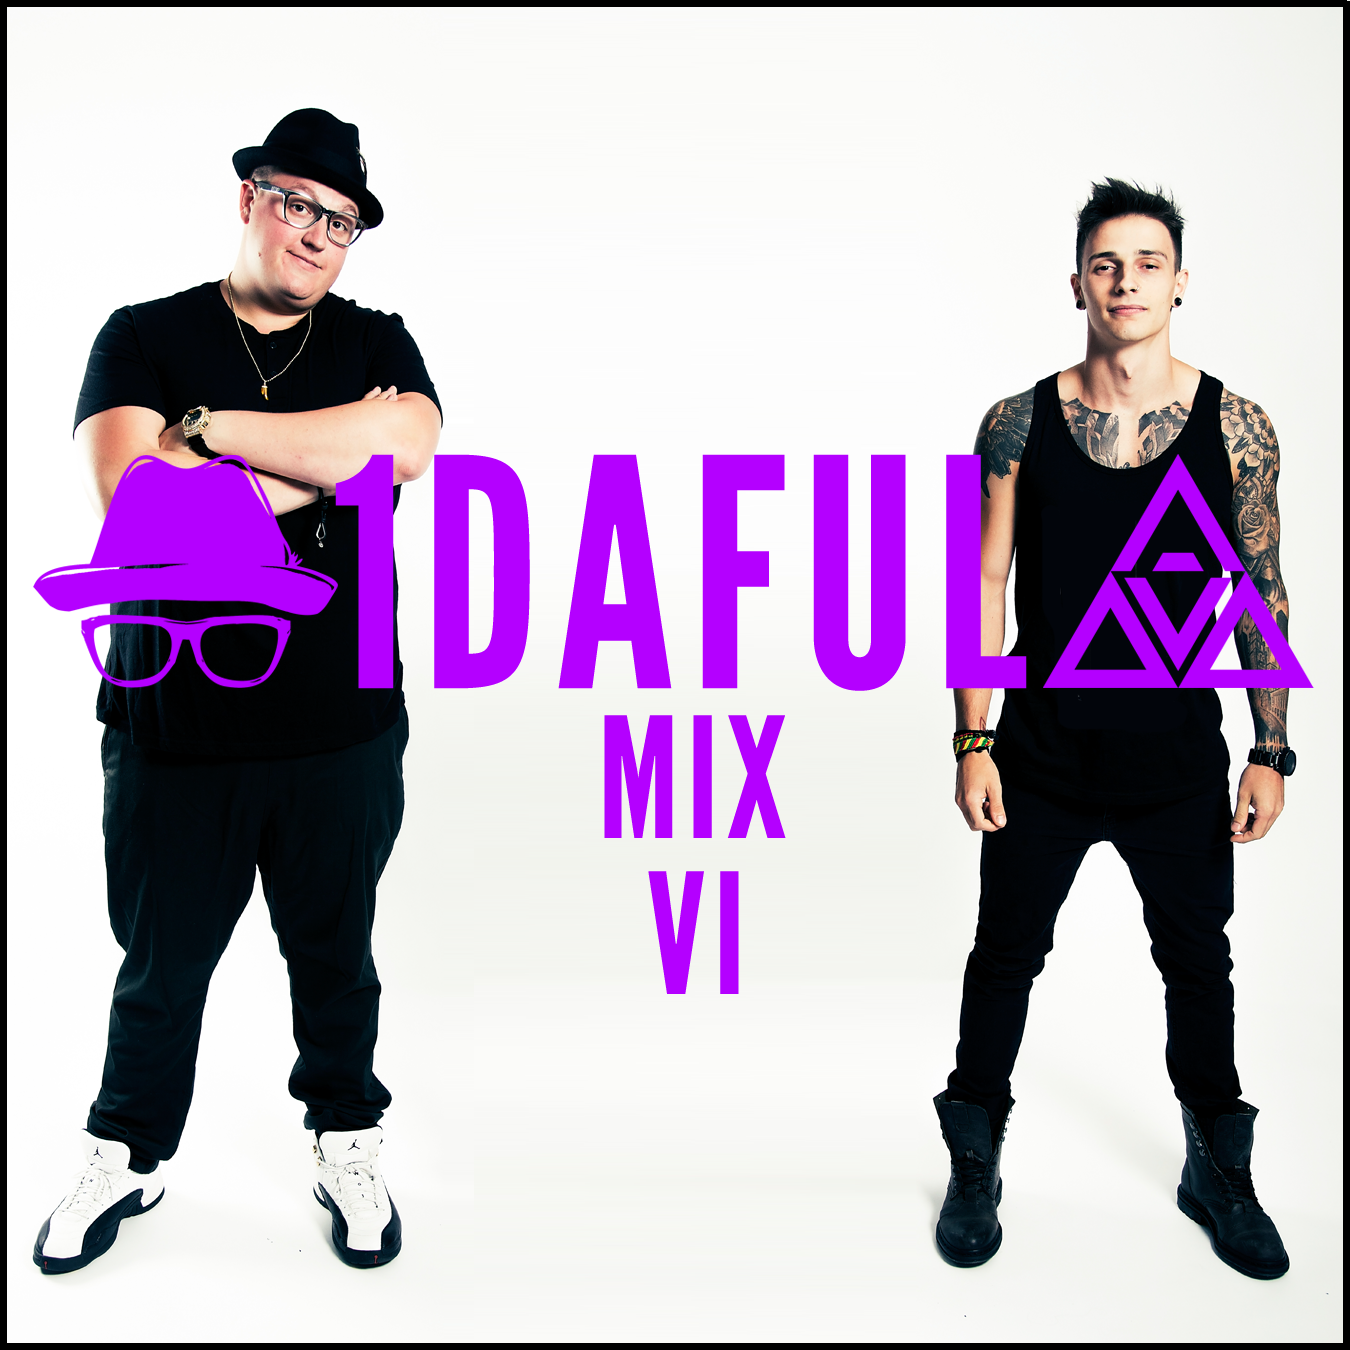 1DAFUL Mix - 006 - TB1 and David A